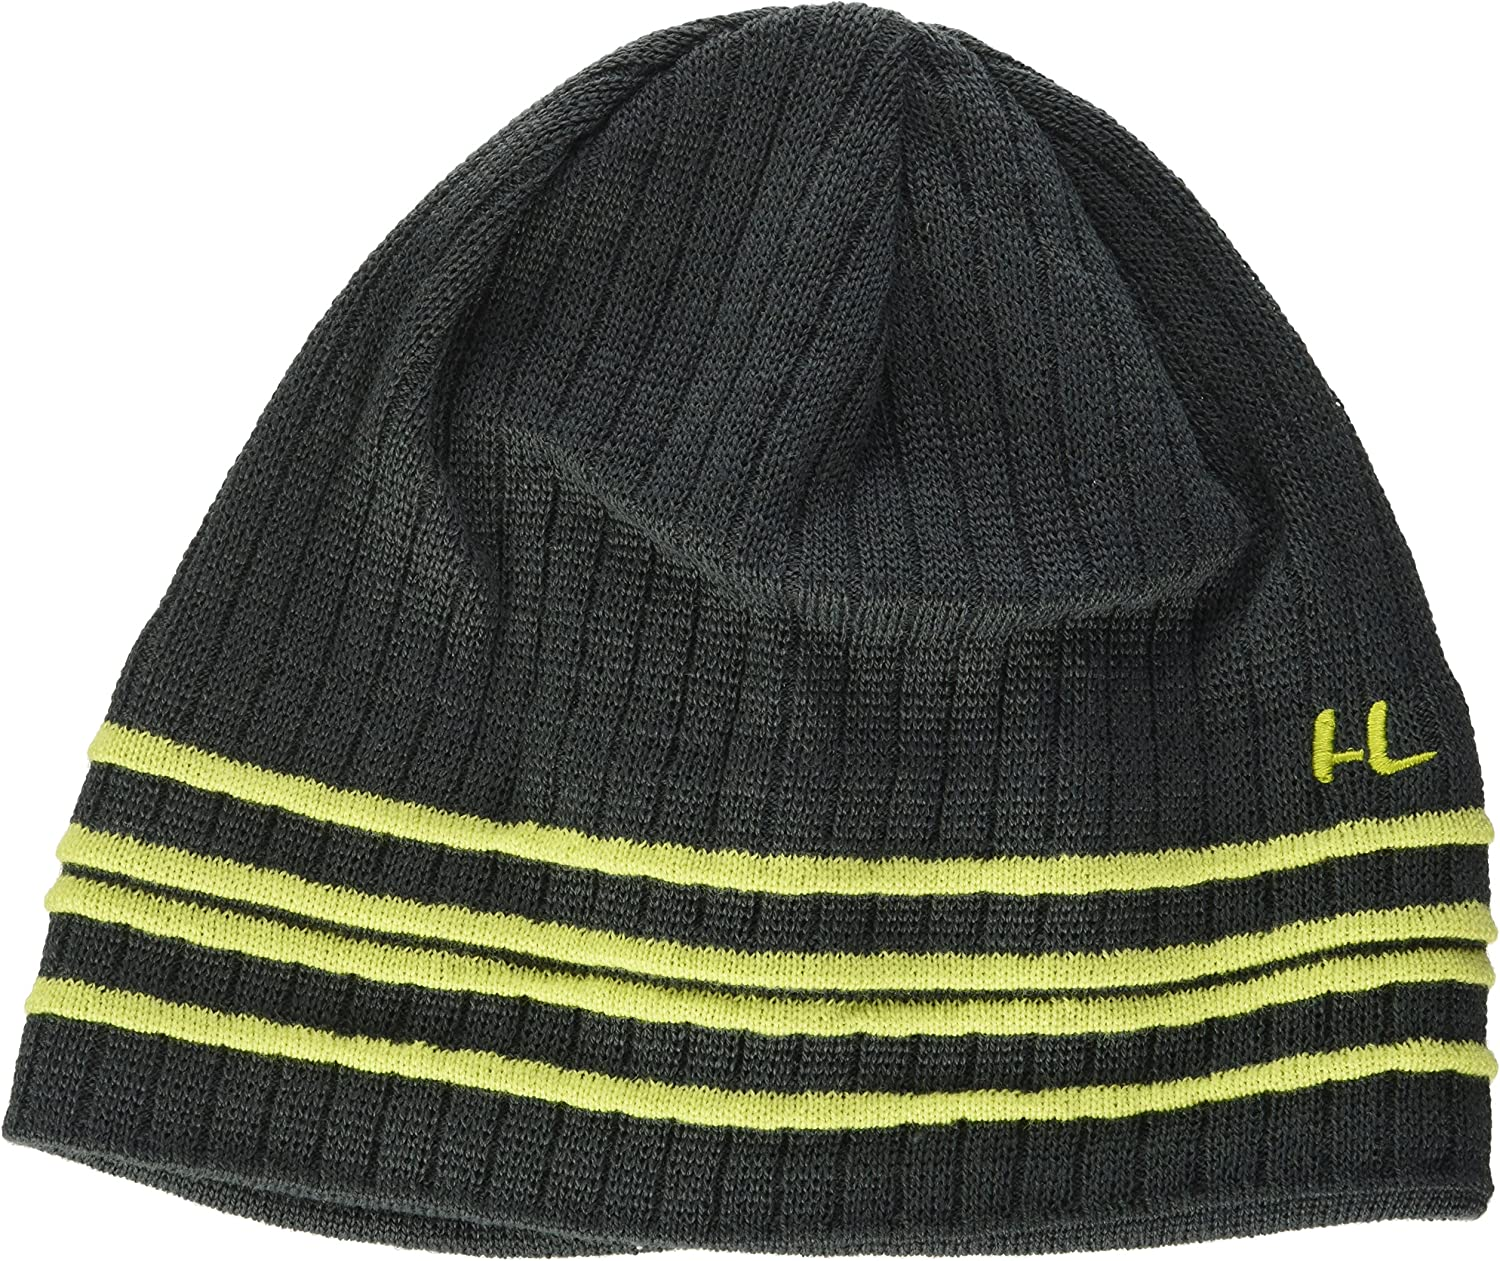 Ferrino Spark Cap Hat, Green, One Size